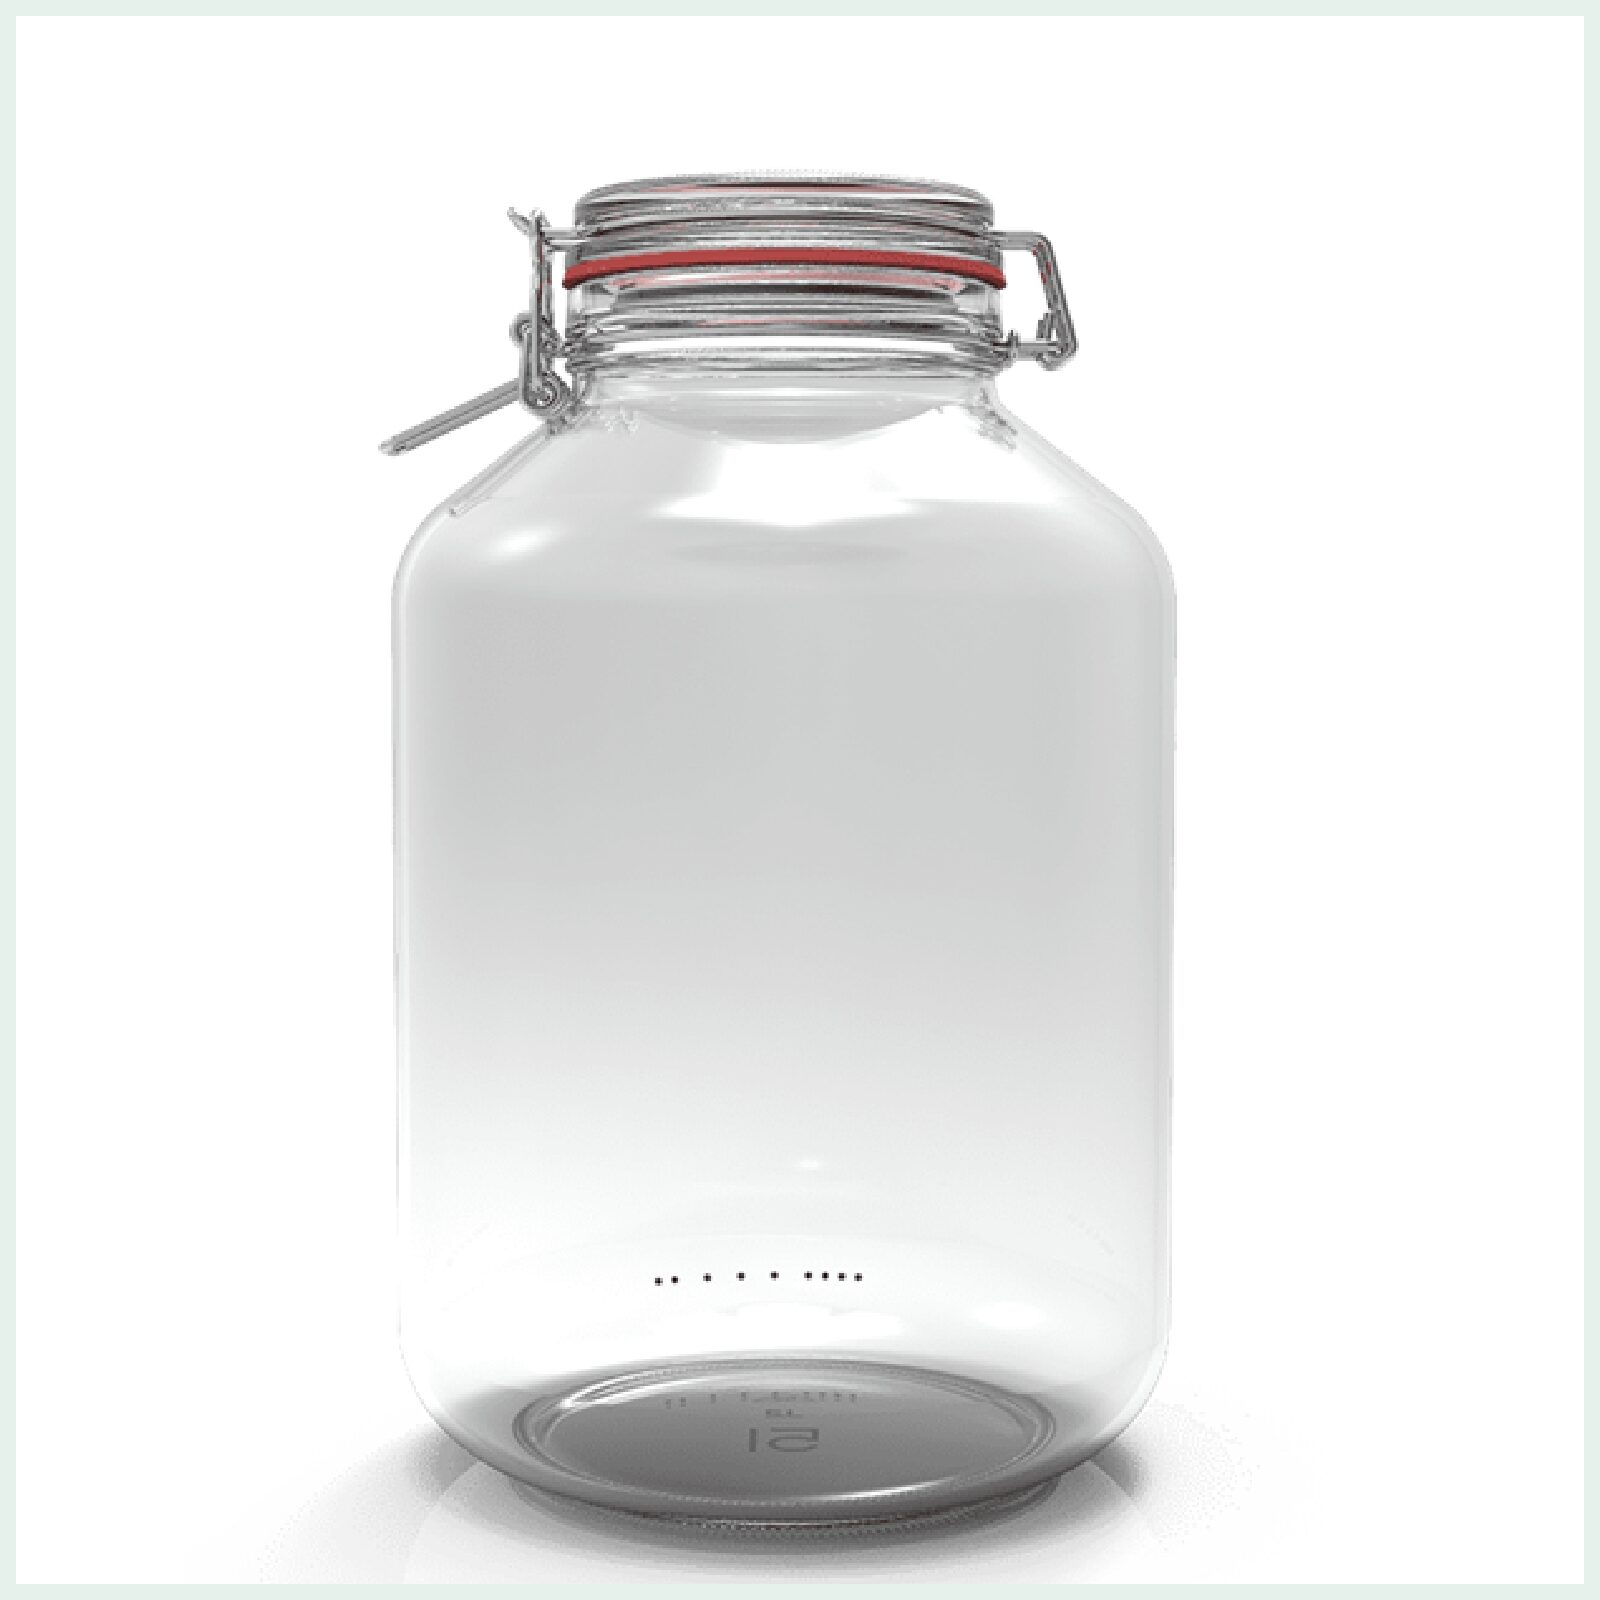 5 litre 1.3 gallon extra large clip top jar for pickling and cookies